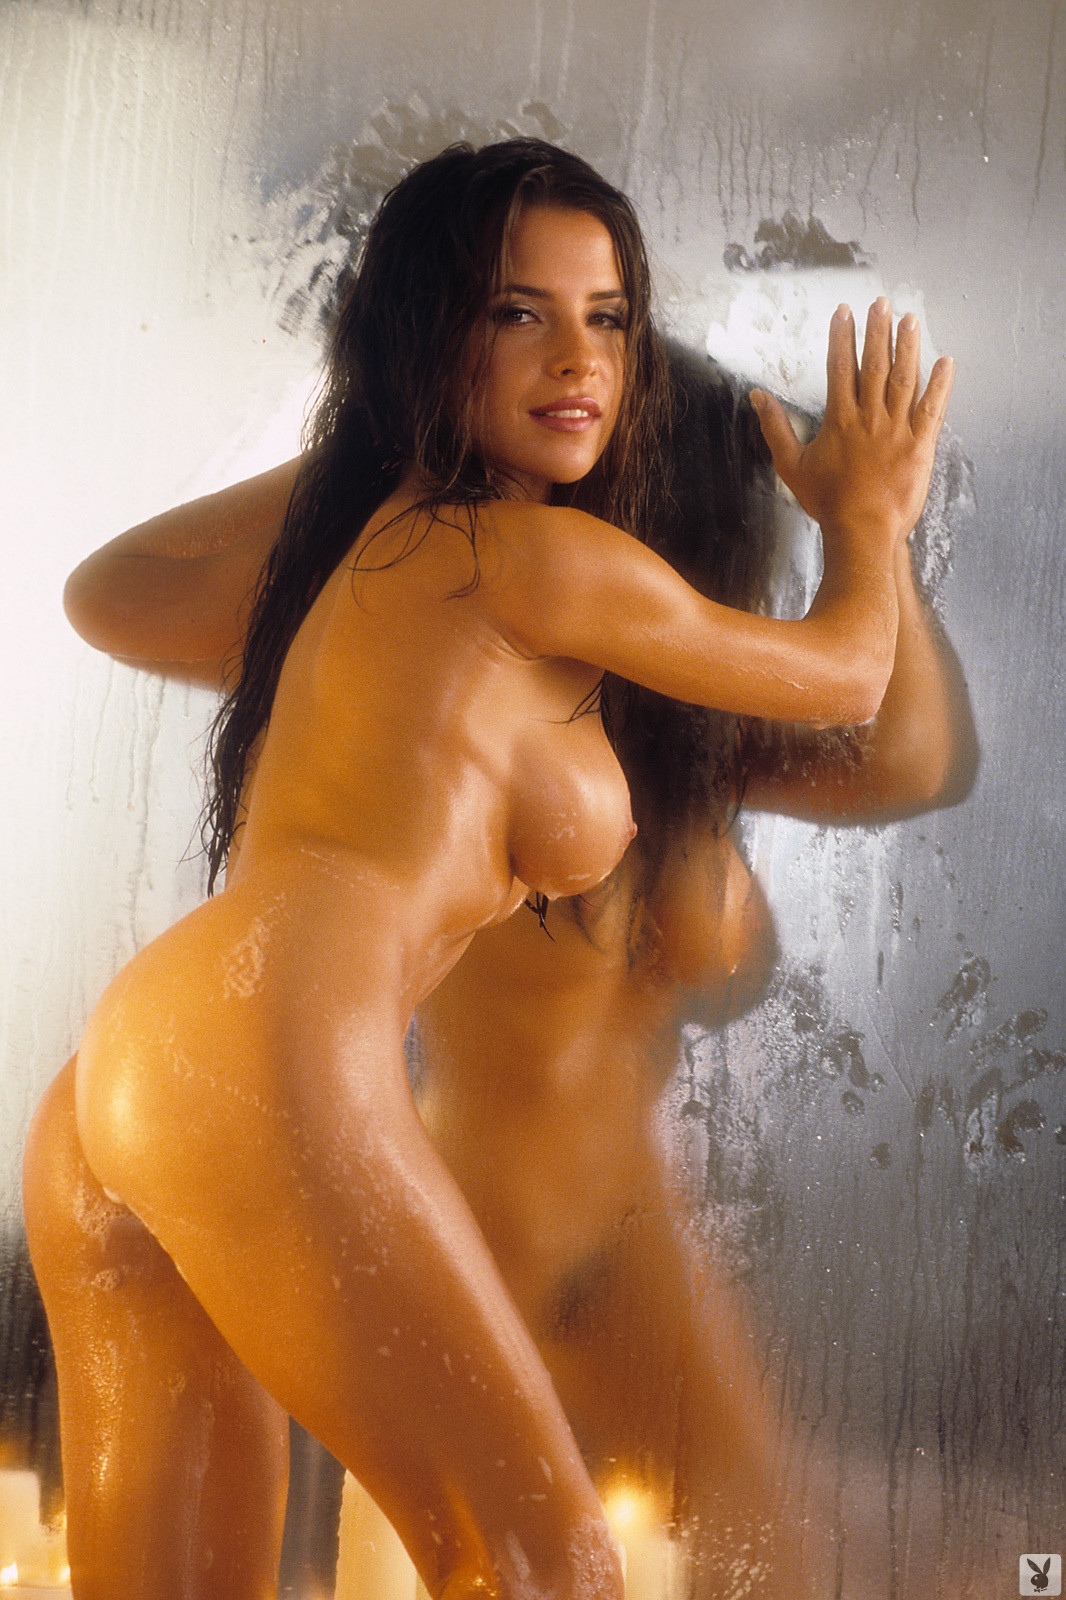 Playmate Of The Month April 1997 Kelly Marie Monaco 0062